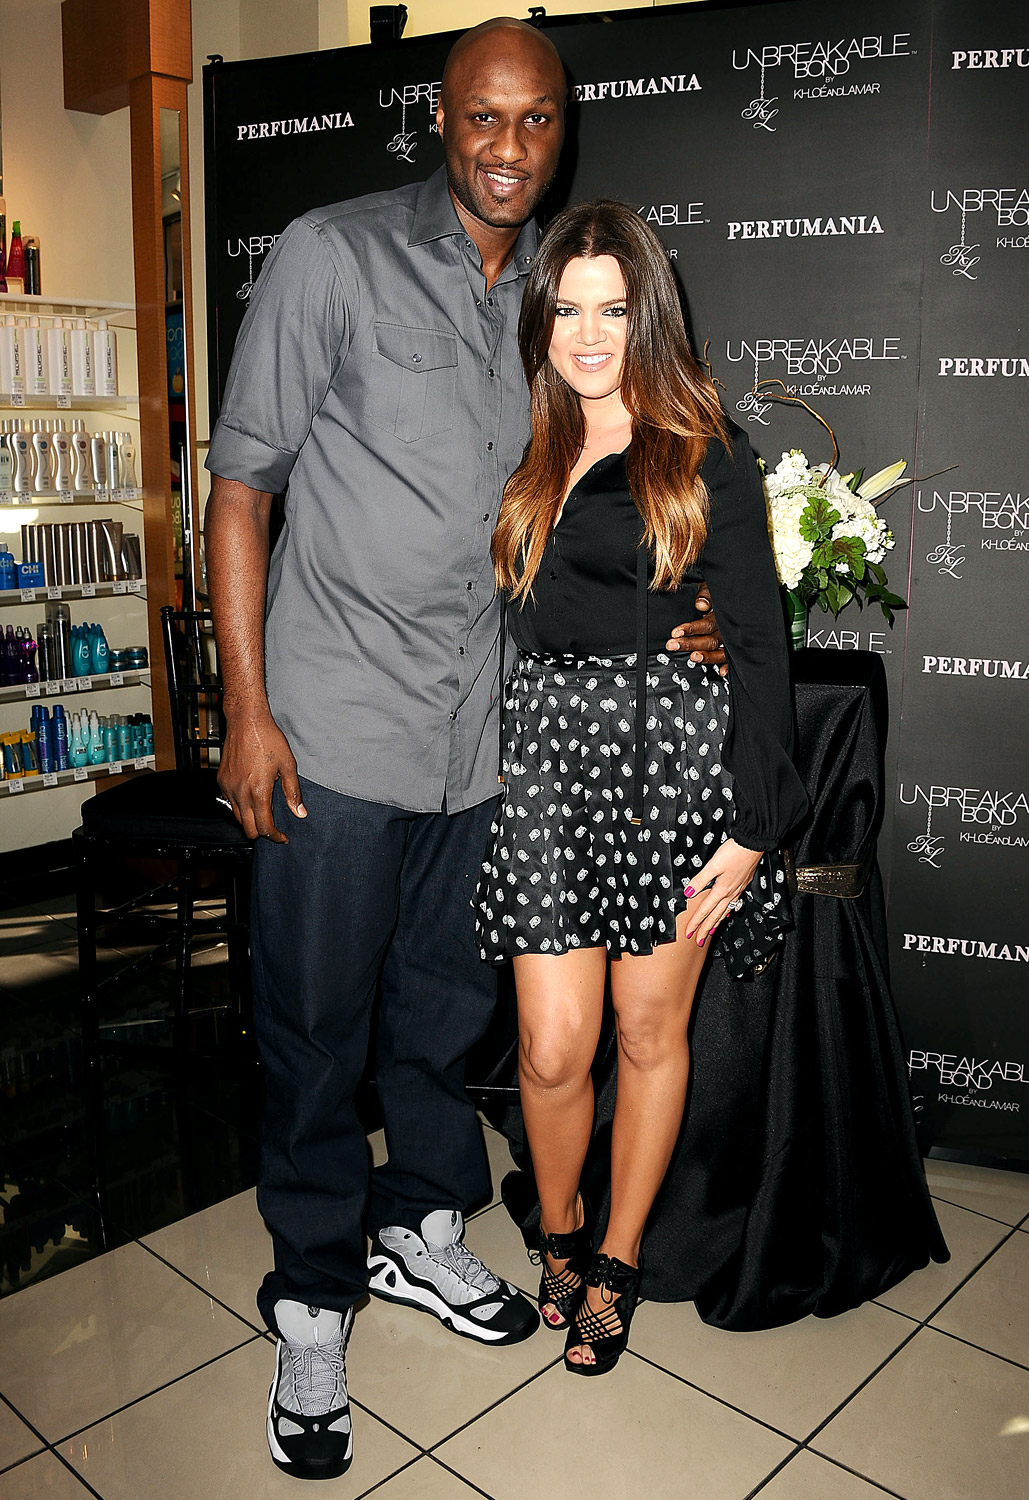 """Following their wedding in 2009, NBA basketball player Lamar Odom was always a constant support through her weight struggles. """"Lamar tells me he loves my body and I'm beautiful multiple times a day,"""" Khloé, pictured with Odom IN L.A. in 2012, has shared."""